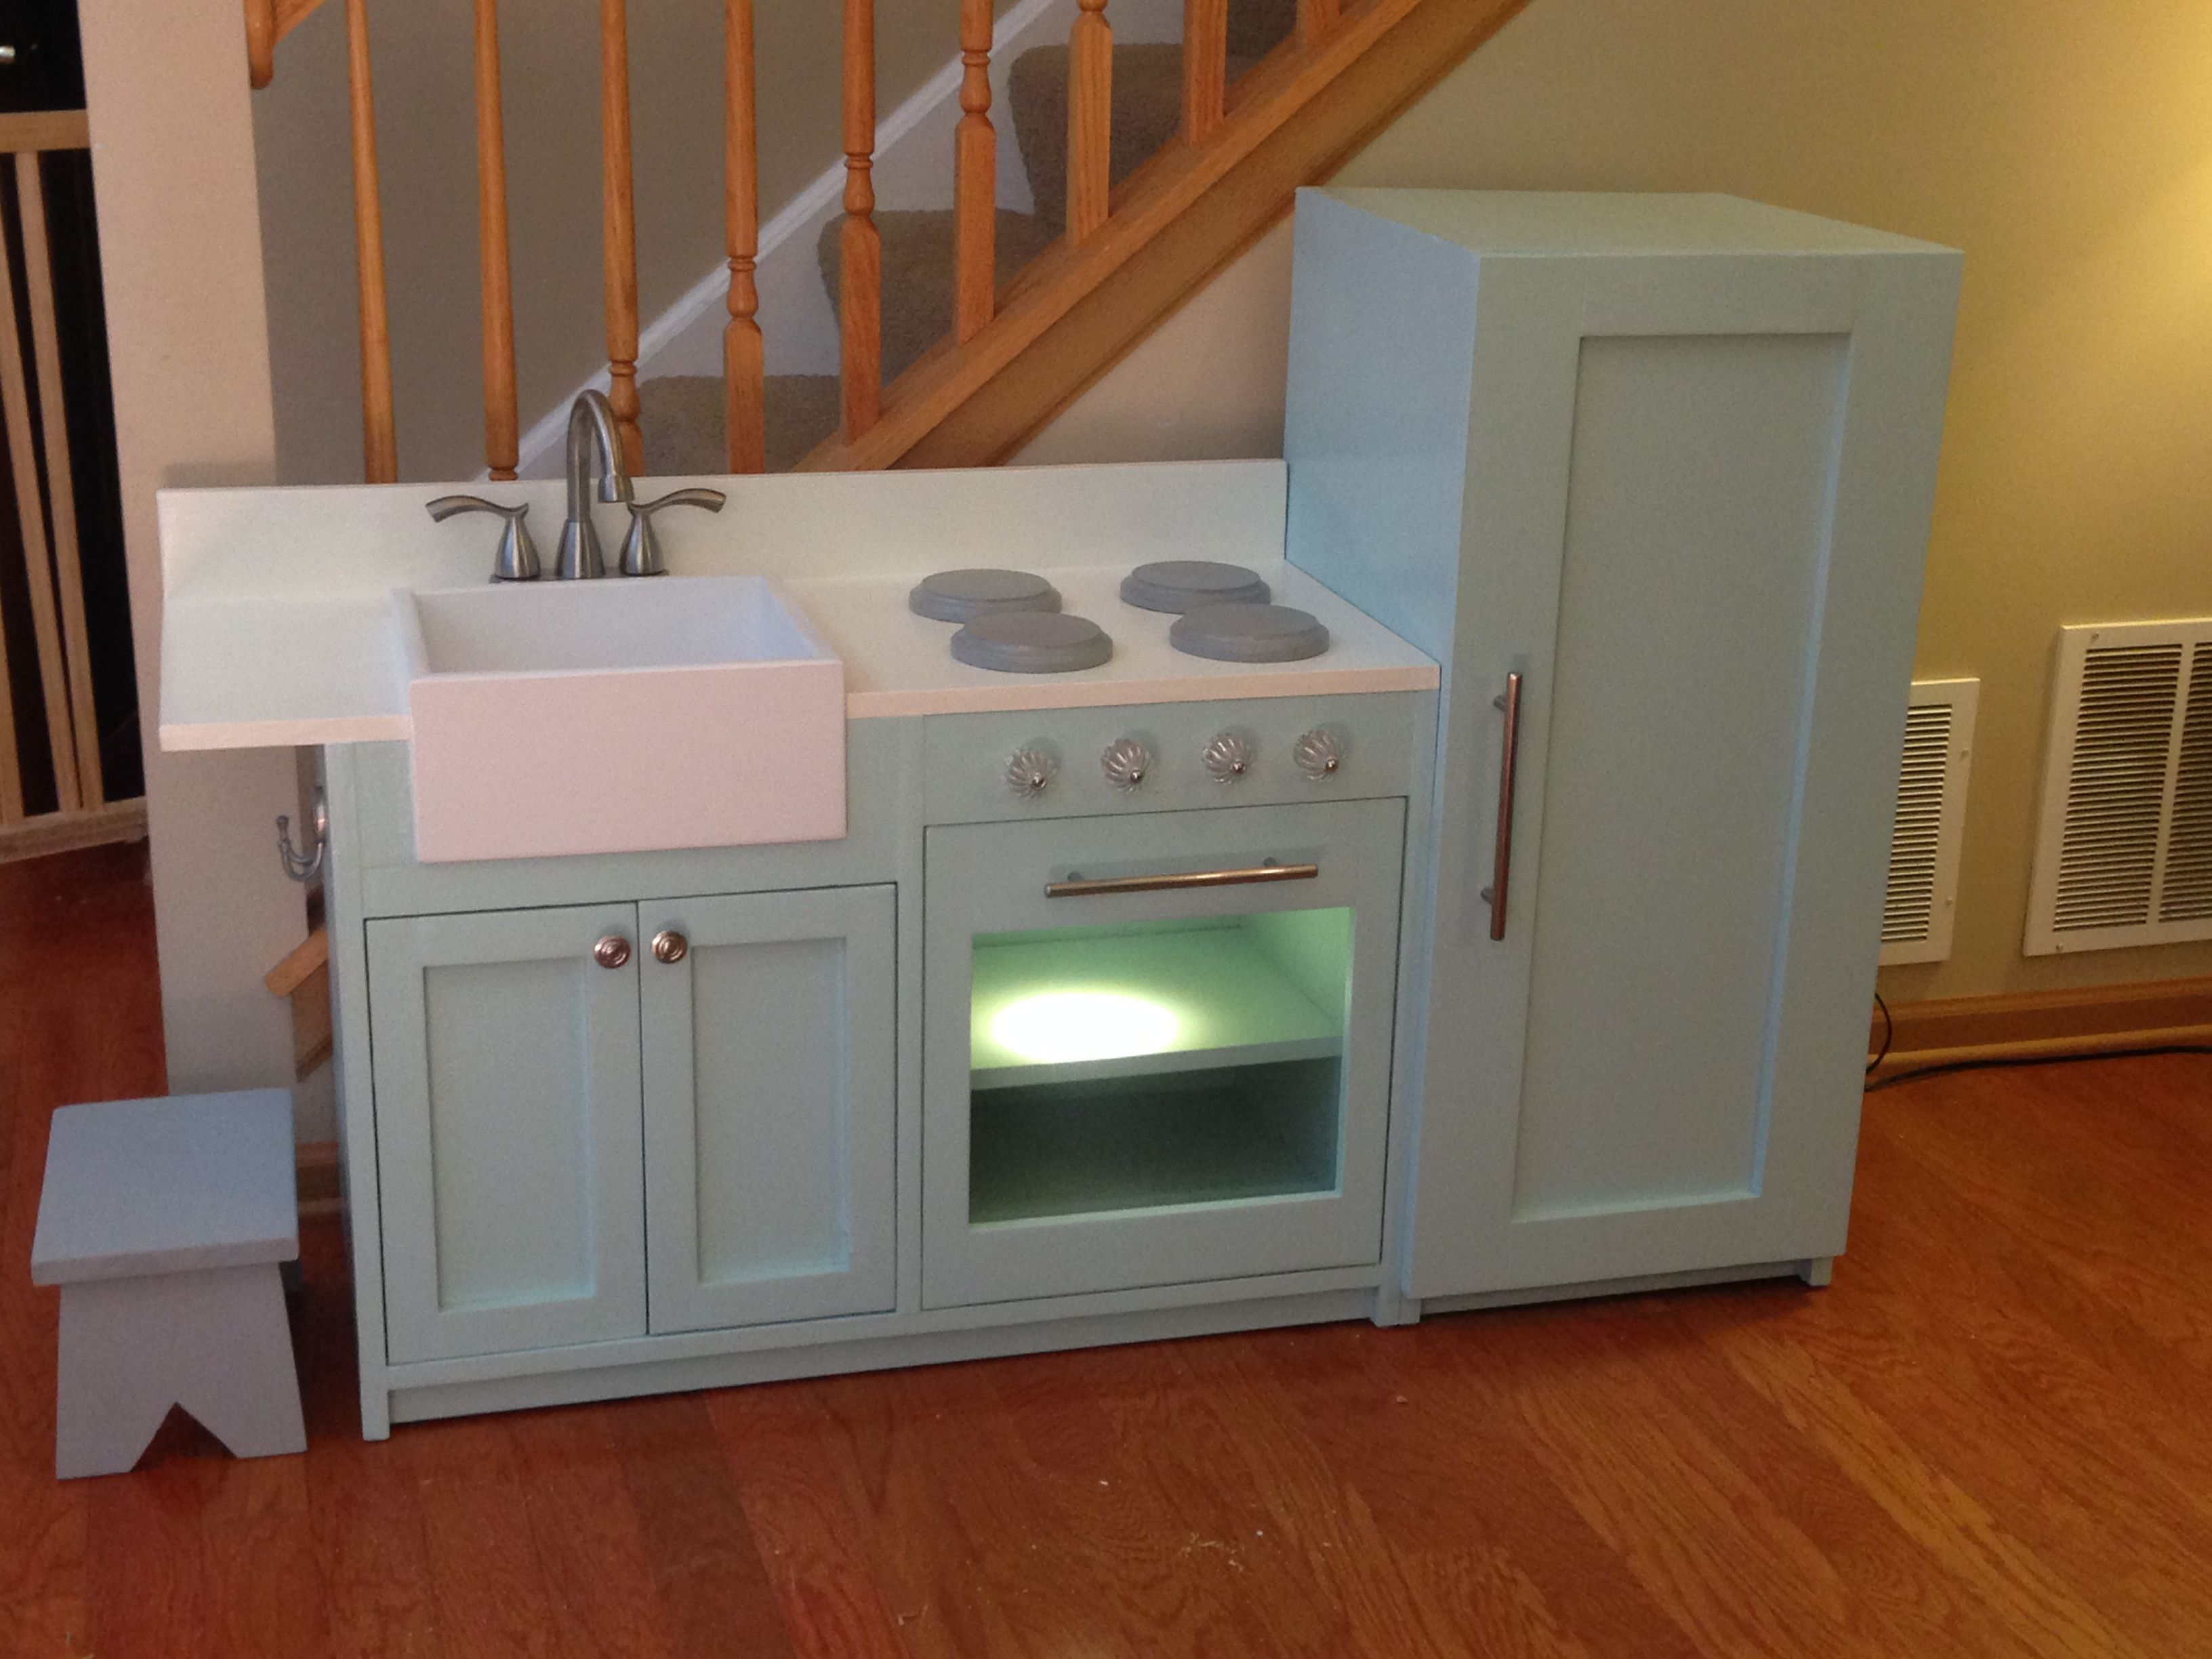 Diy Kitchen Cabinets Hgtv Pictures Do It Yourself Ideas: Do It Yourself Home Projects From Ana